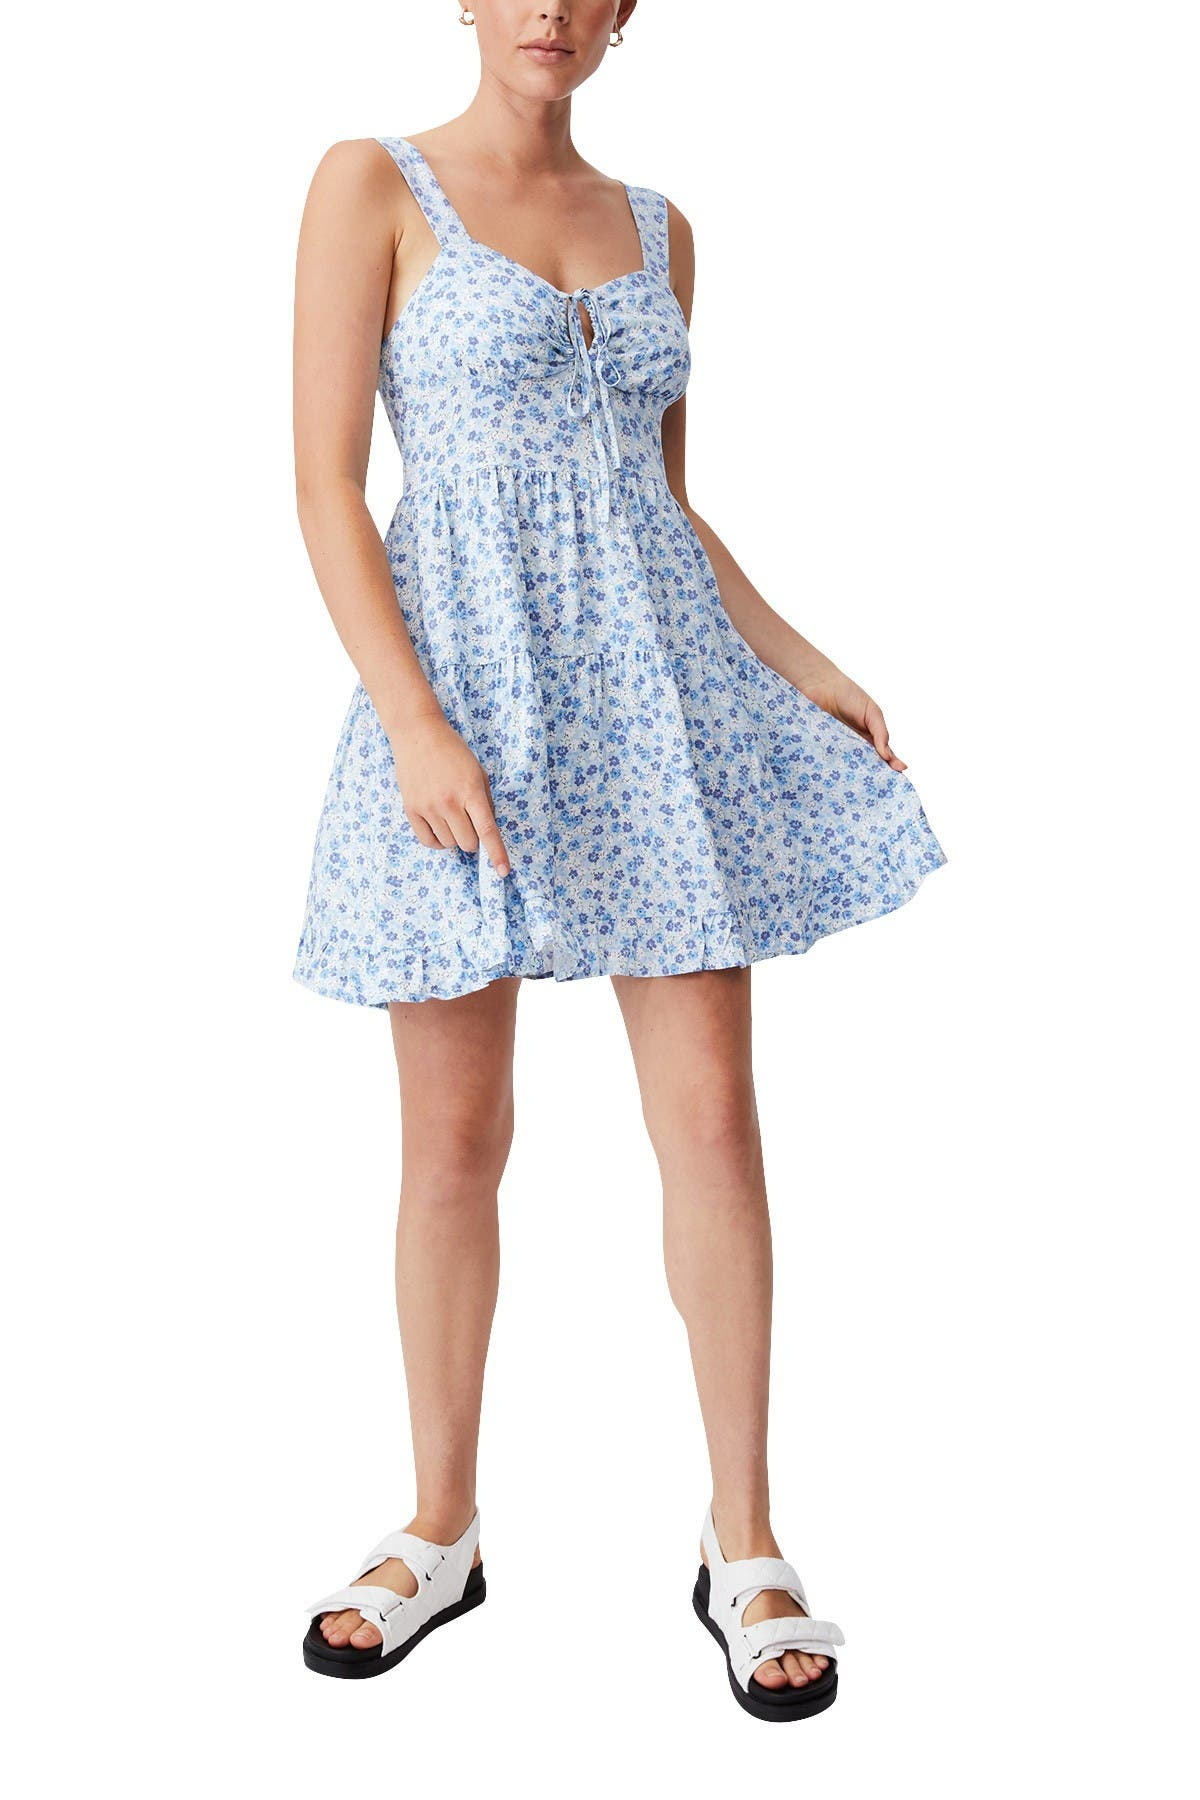 Image of Cotton On Woven Sandy Skater Dress